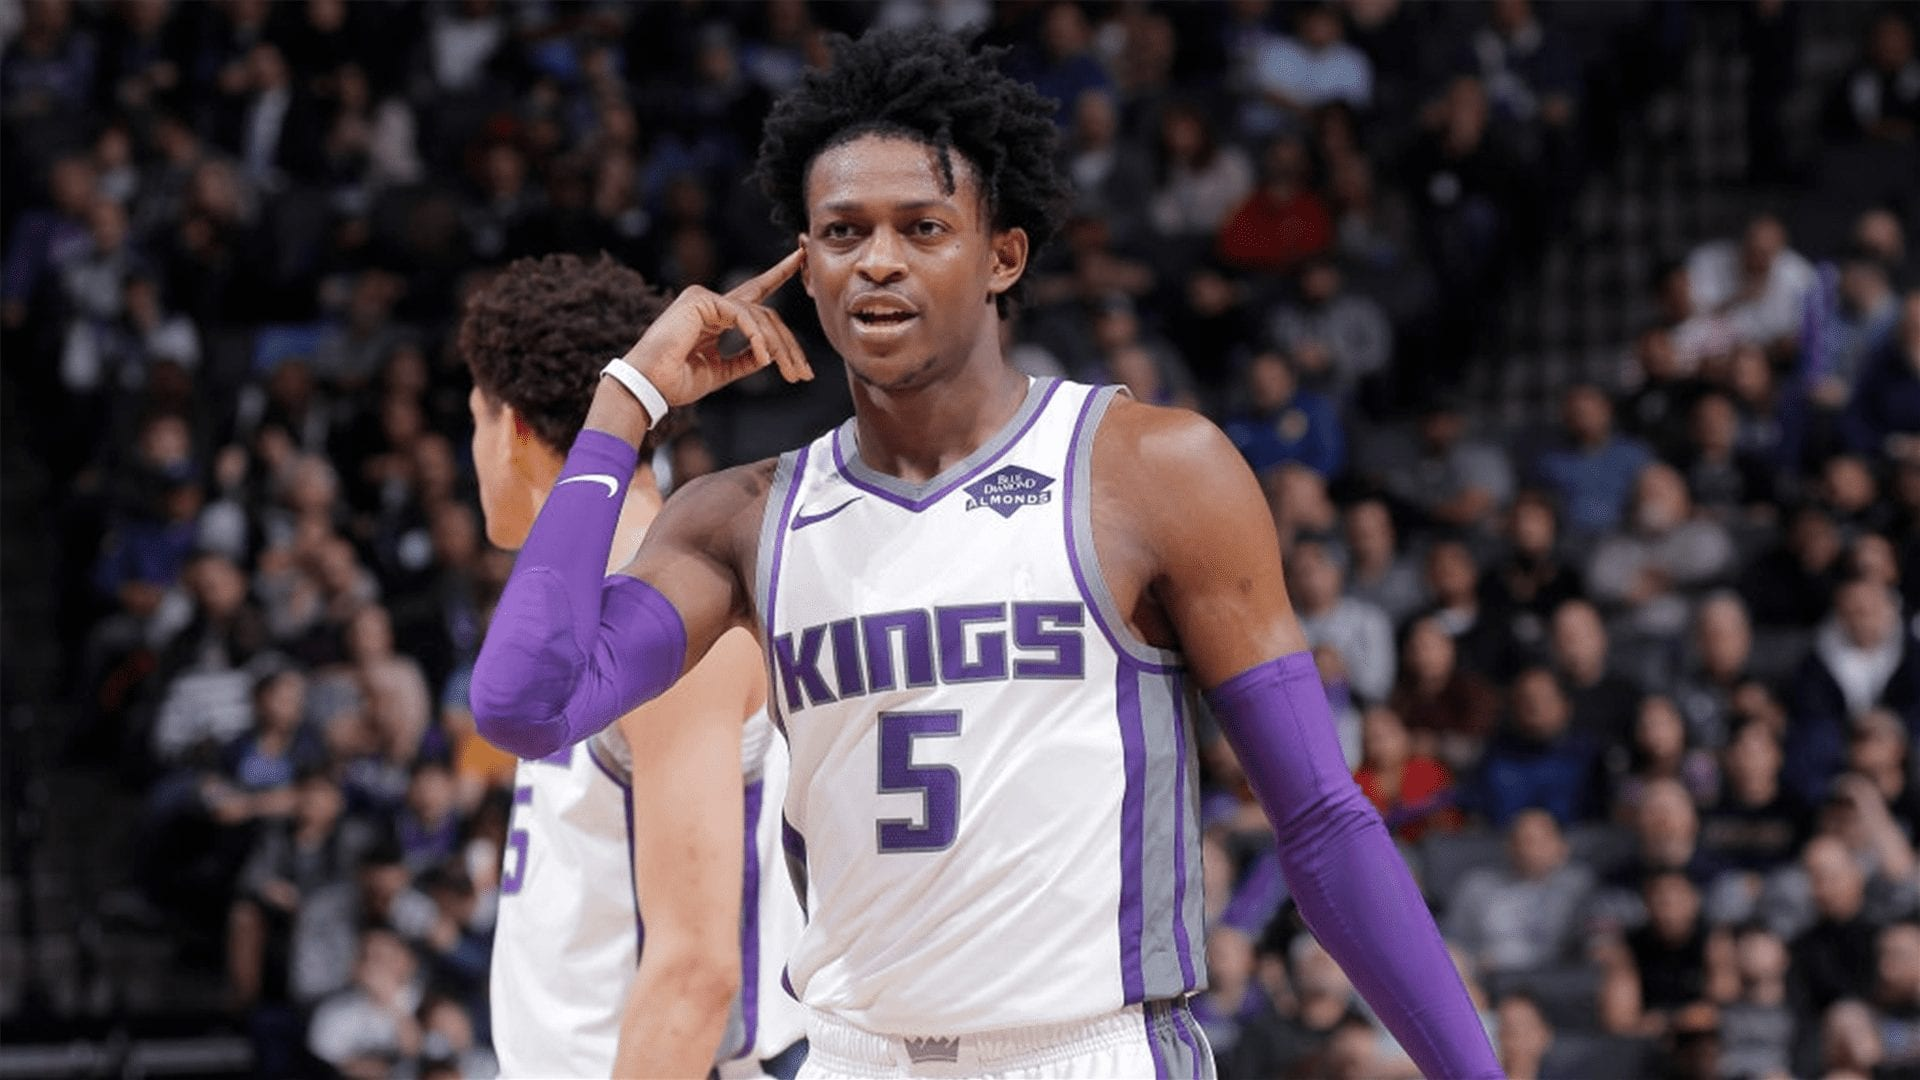 De'Aaron Fox Believes NBA 2K is 'Trash', Will Not Stream It